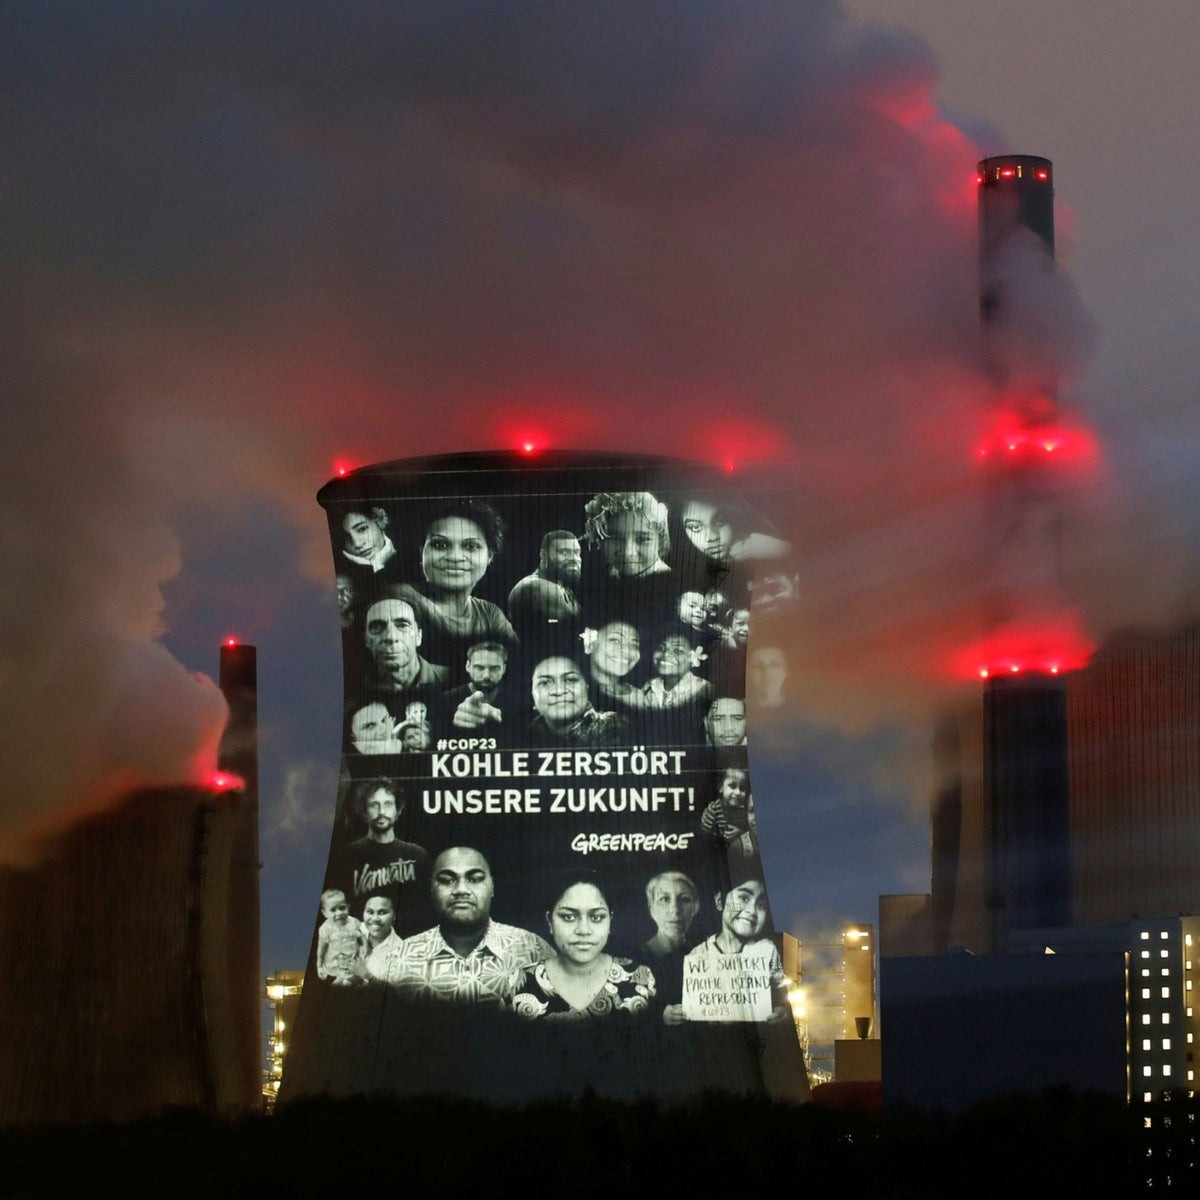 """Activists of the environmental organisation Greenpeace project a slogan that reads """"No Future in Fossil Fuels"""" on the cooling tower of RWE coal power plant, one of Europe's biggest electricity companies in Neurath, north-west of Cologne, Germany, November 10, 2017"""